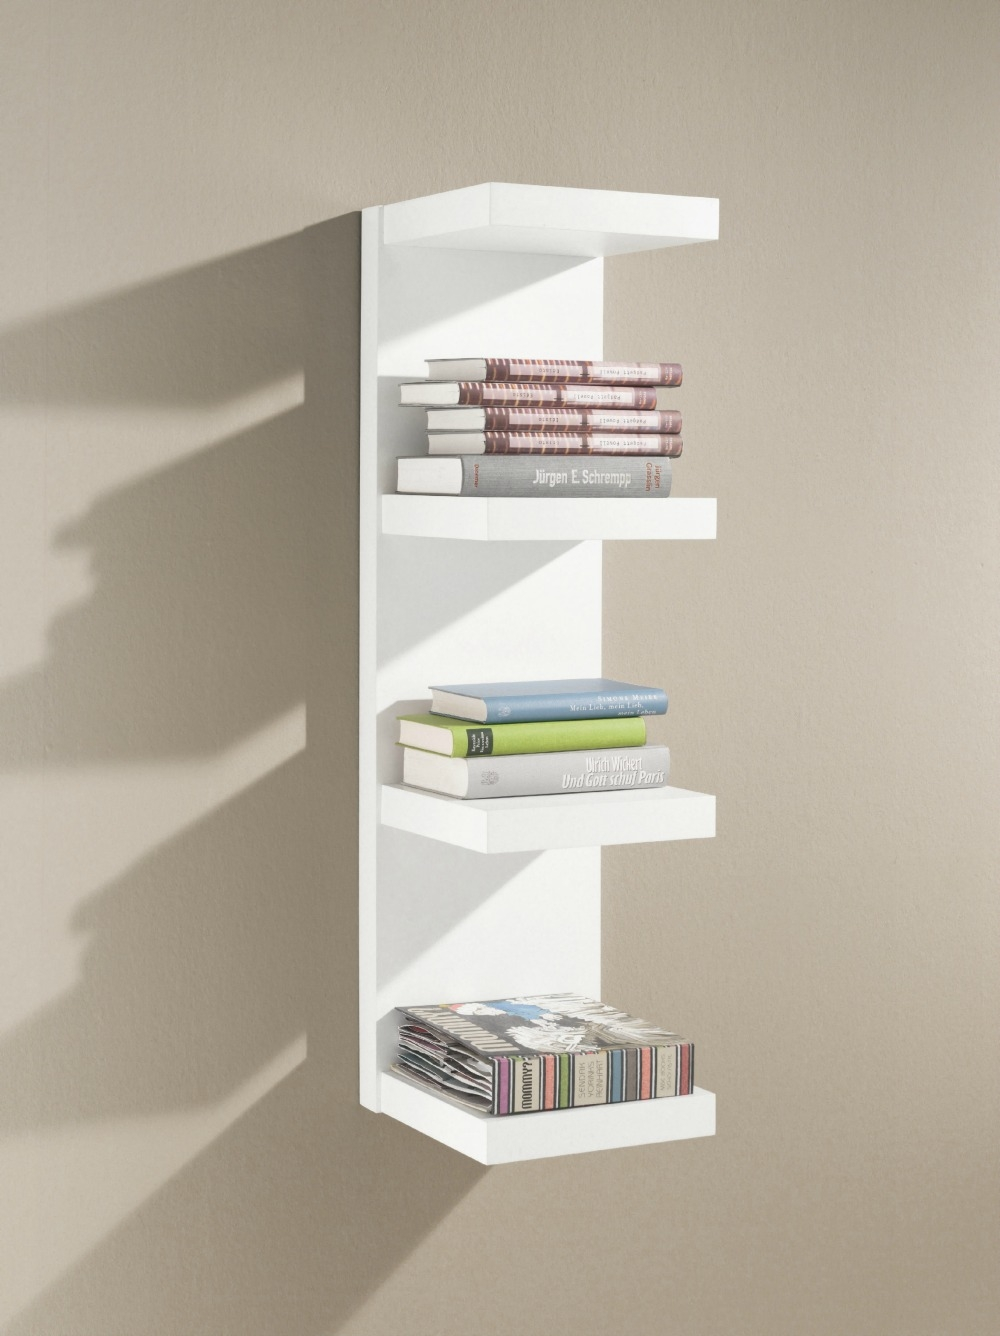 Floating Shelves Floating Wall Shelves In Great Variety Of Sizes In White Wall Shelves (View 9 of 15)